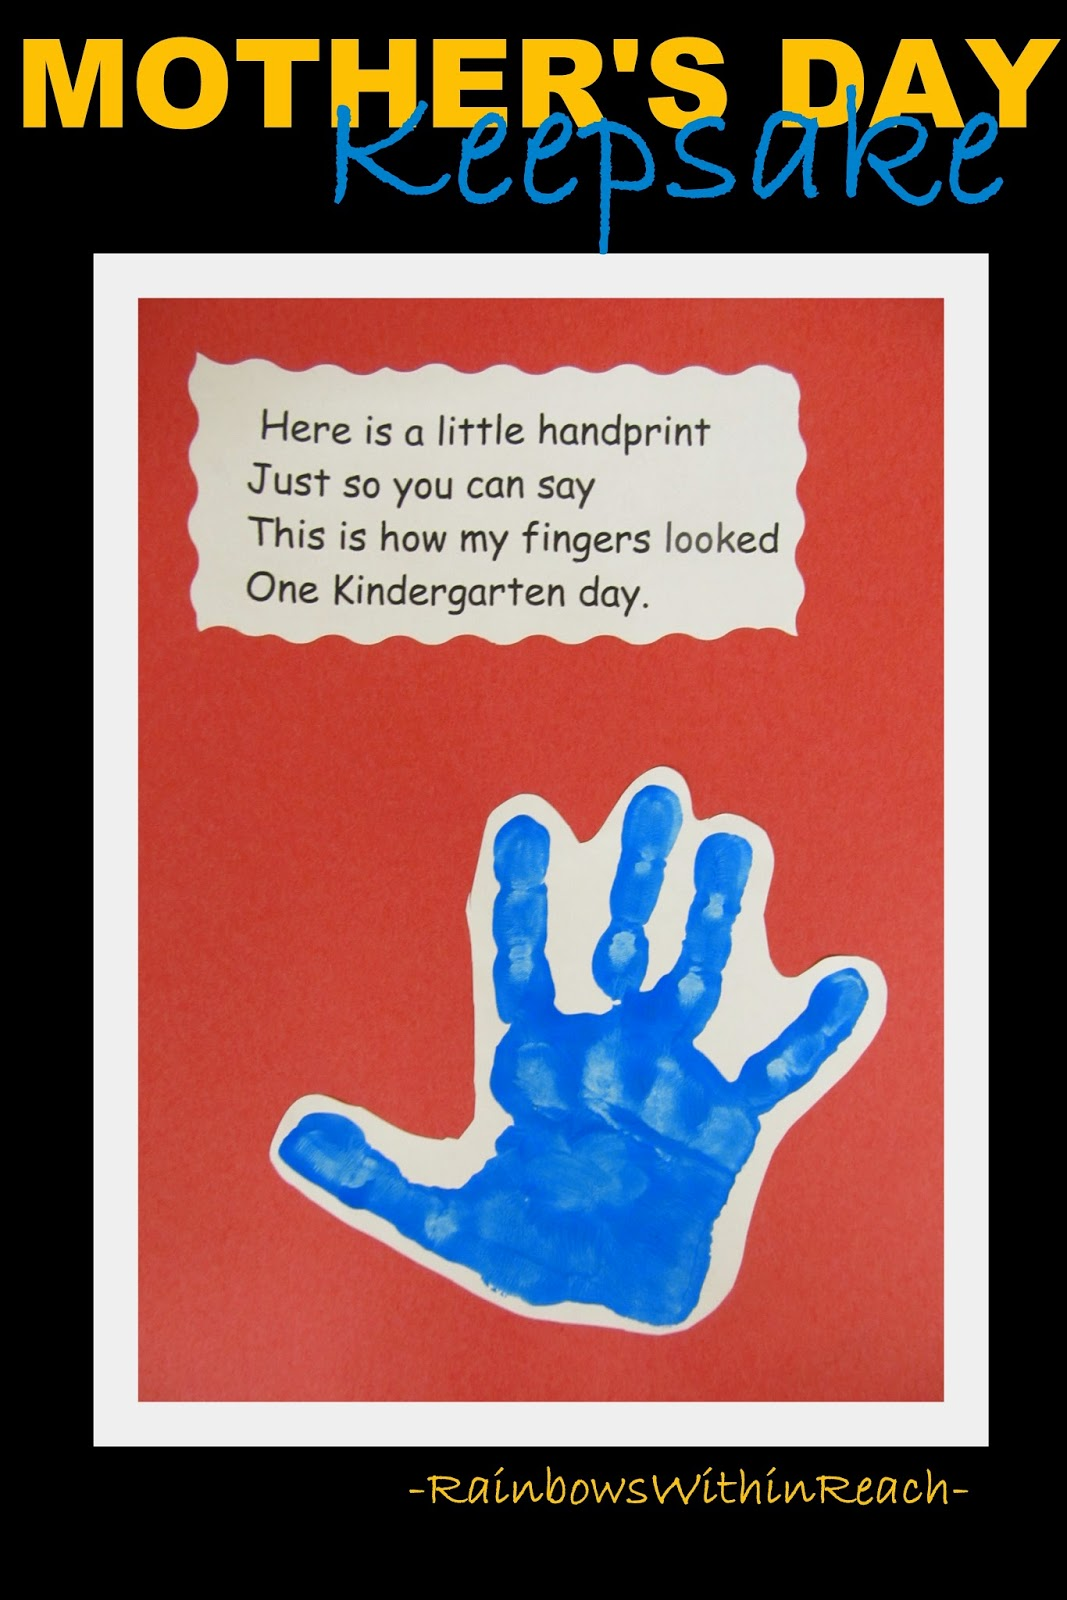 Mother's Day Painted Hand Keepsake with Rhyme at RainbowsWithinReach